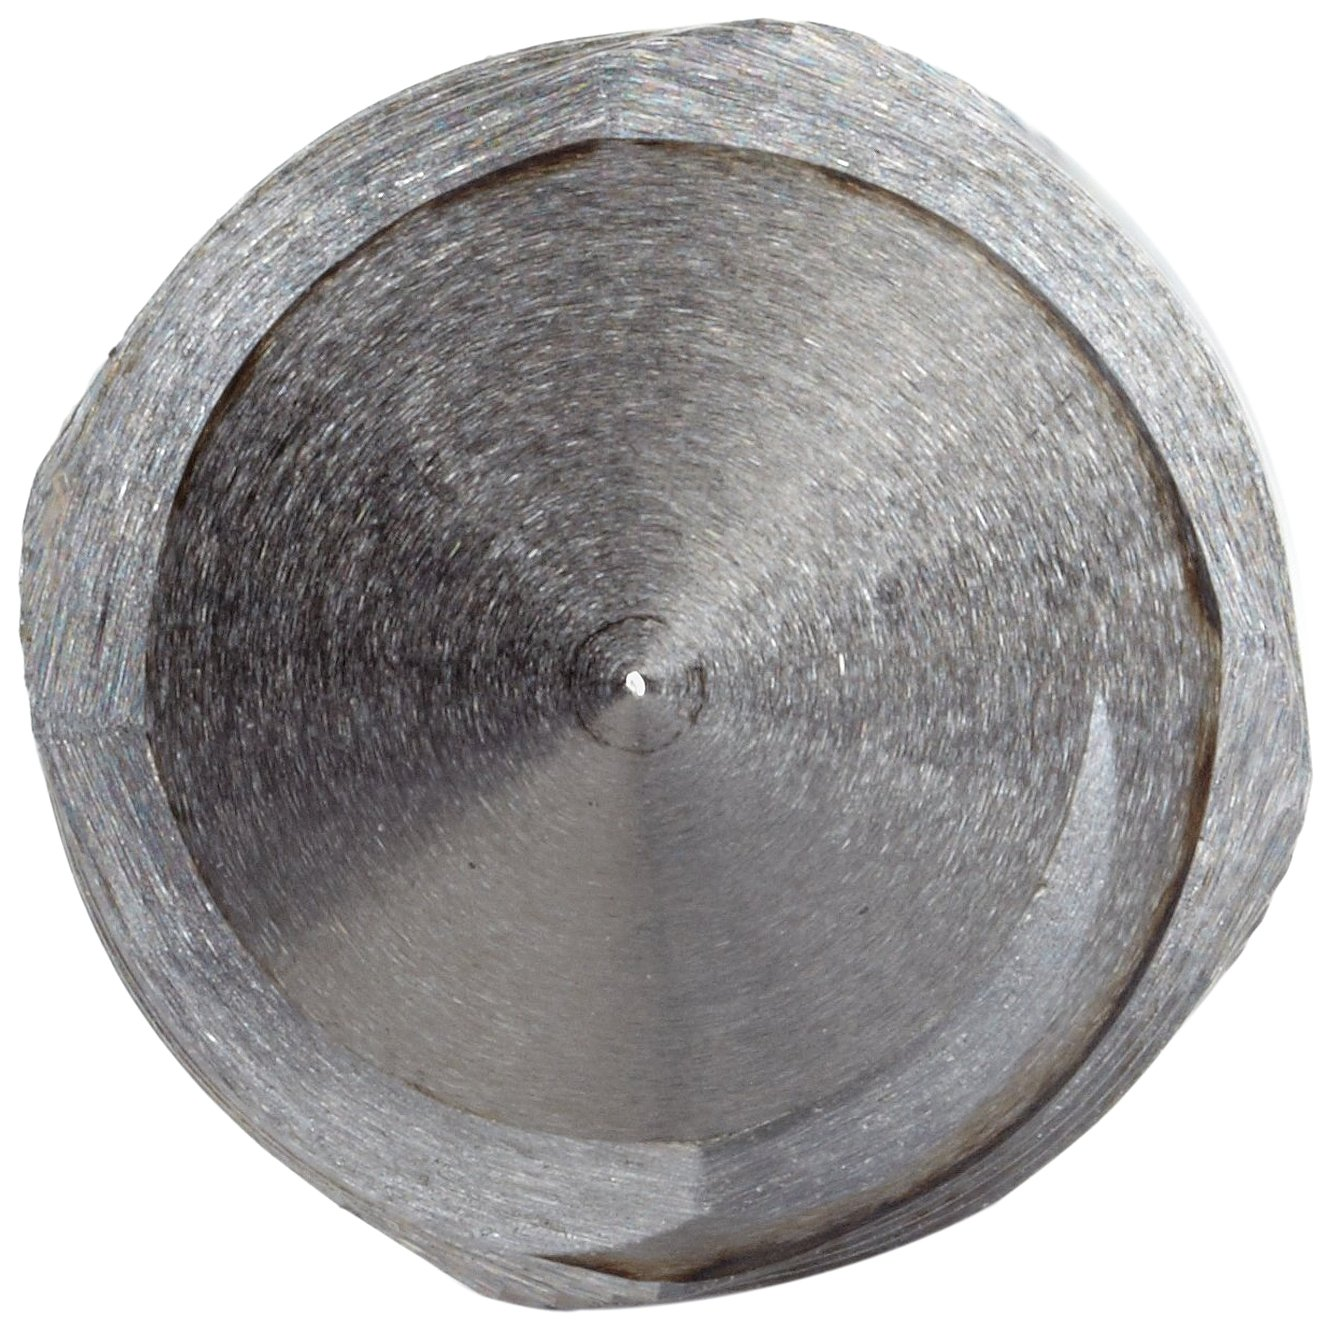 Bright Round Shank with Square End Plug Chamfer Uncoated H4 Tolerance Finish UNC Union Butterfield 1580 High-Speed Steel Thread Forming Flute Tap 1//4-20 Thread Size